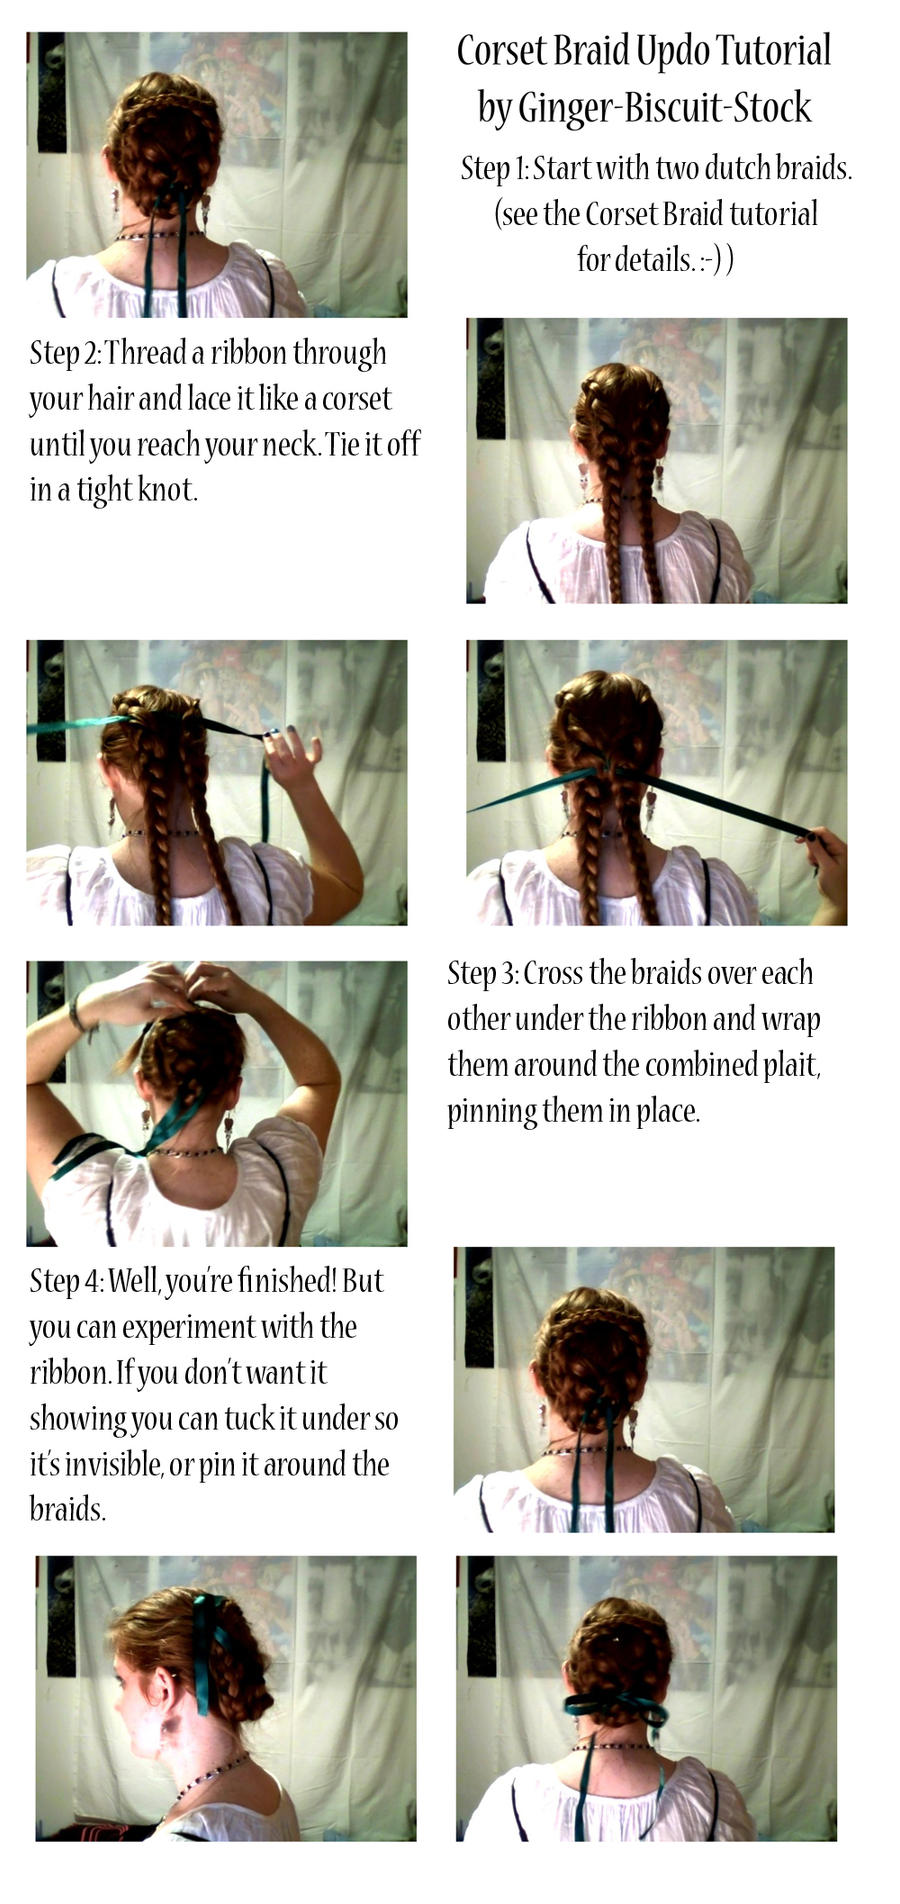 Corset Braid Updo Tutorial by ~Ginger-Biscuit-Stock on deviantART